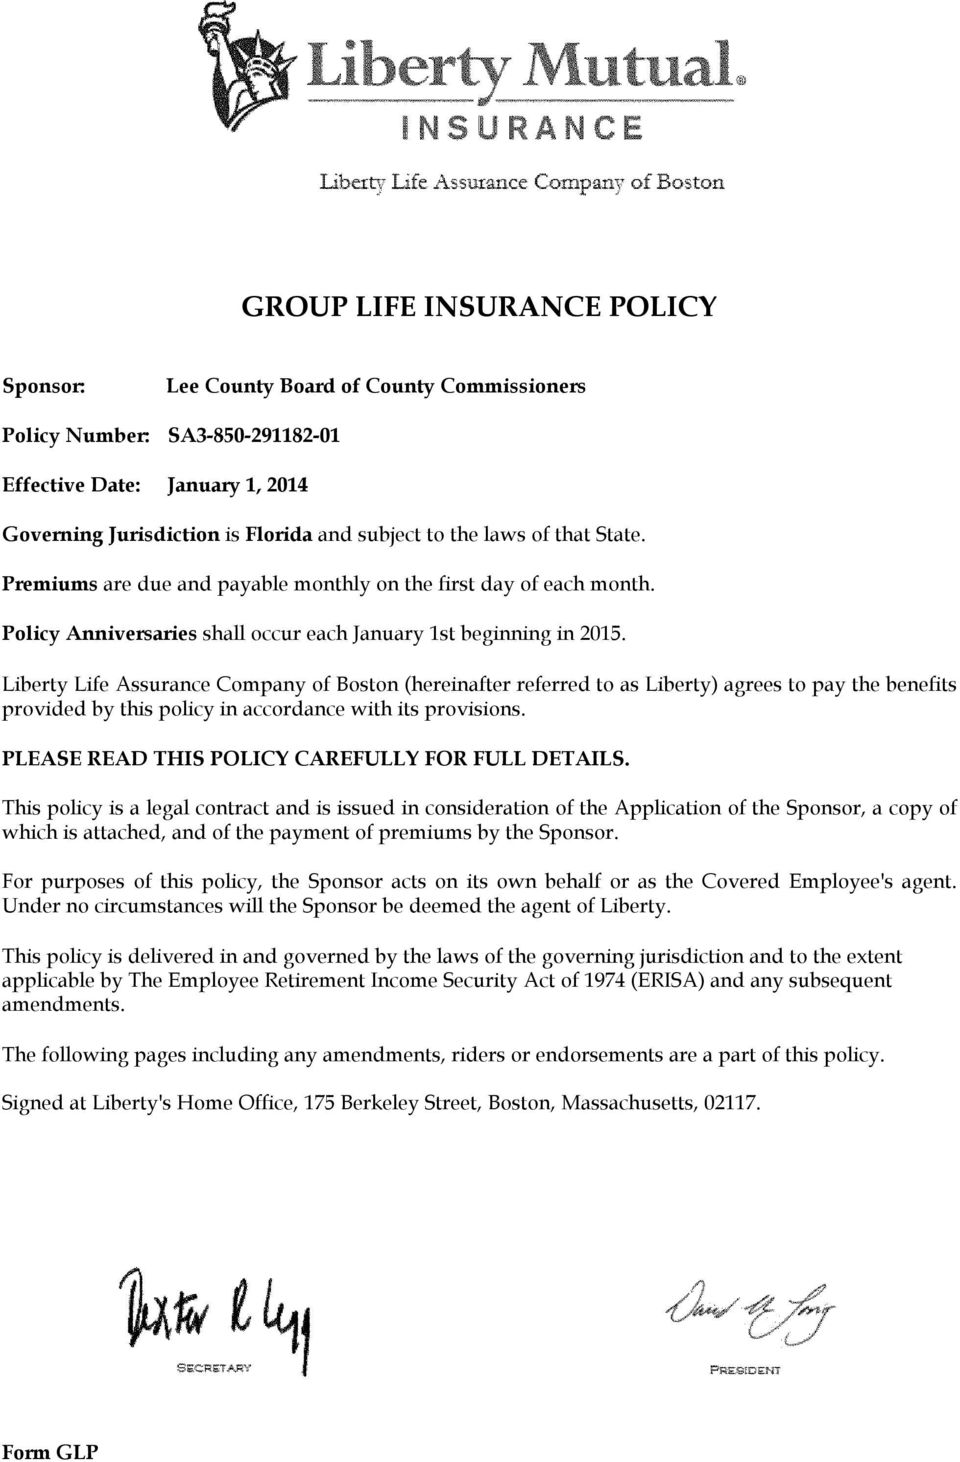 Liberty Life Assurance Company of Boston (hereinafter referred to as Liberty) agrees to pay the benefits provided by this policy in accordance with its provisions.